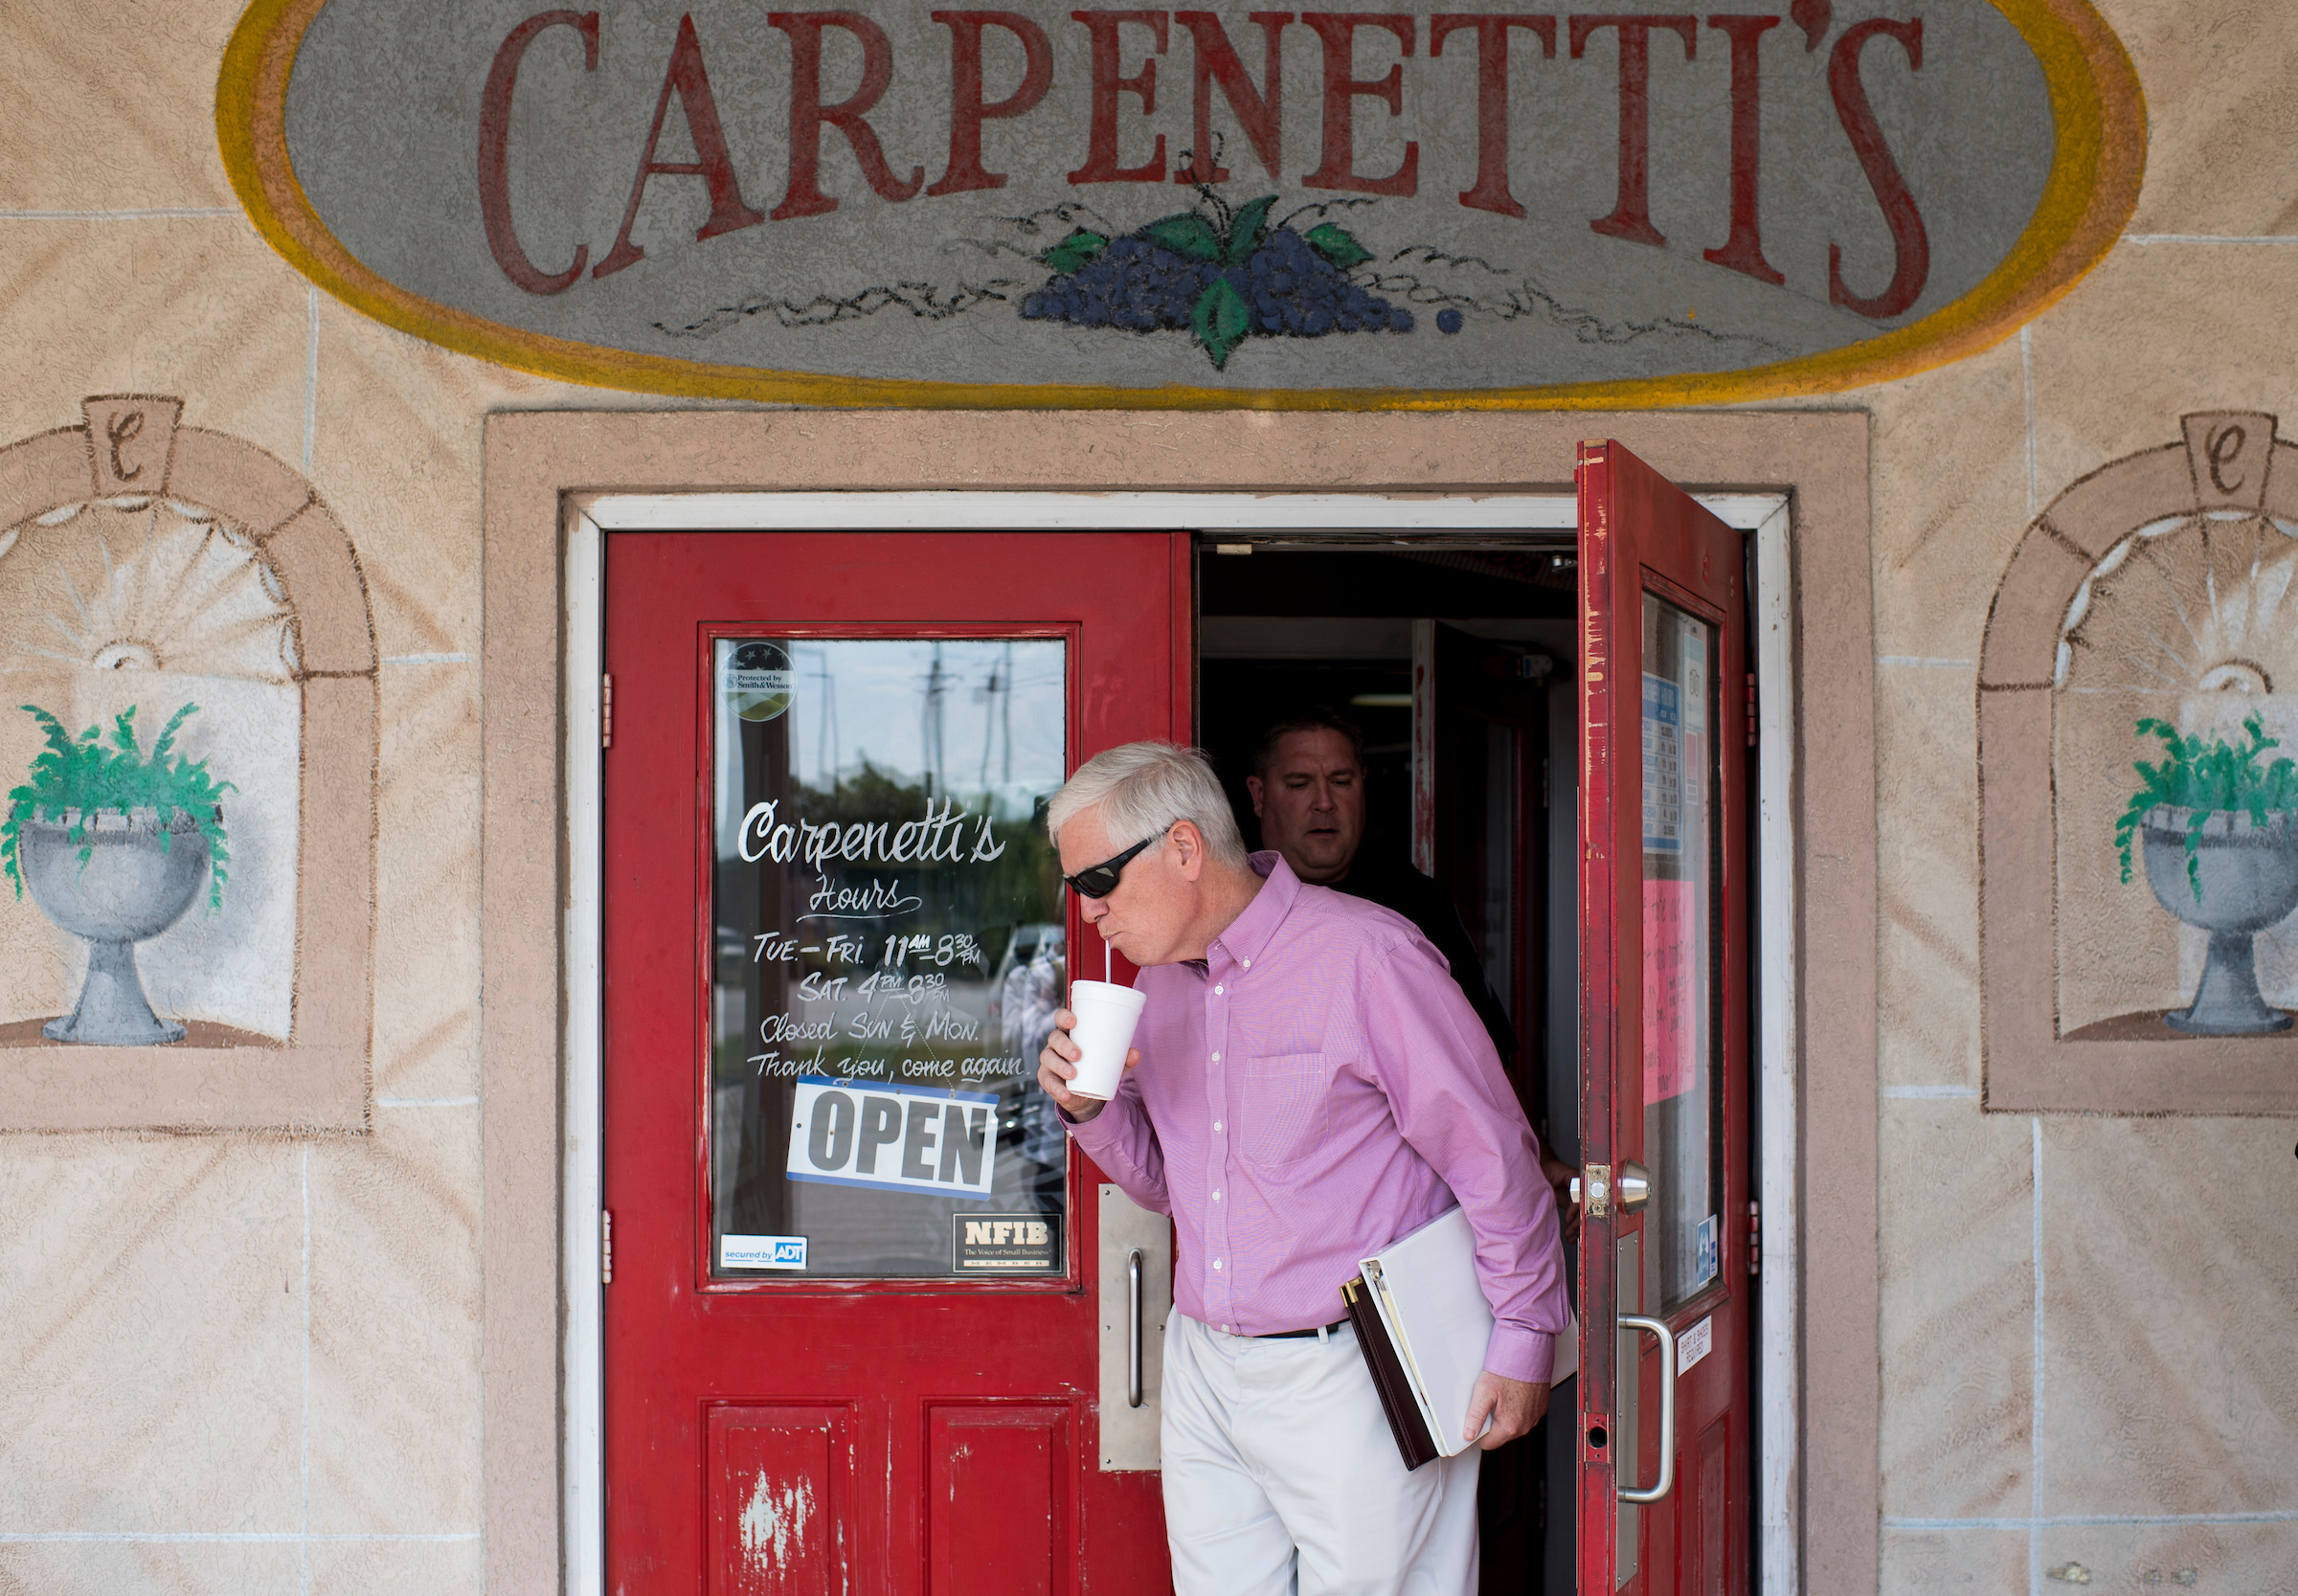 GOP candidate for U.S. Senate Rep. Mo Brooks, R-Ala., leaves Carpenetti's Pizza in Moody, Ala., after speaking with supporters at a stop on his campaign bus tour on Friday, Aug. 4, 2017. (Bill Clark/CQ Roll Call)